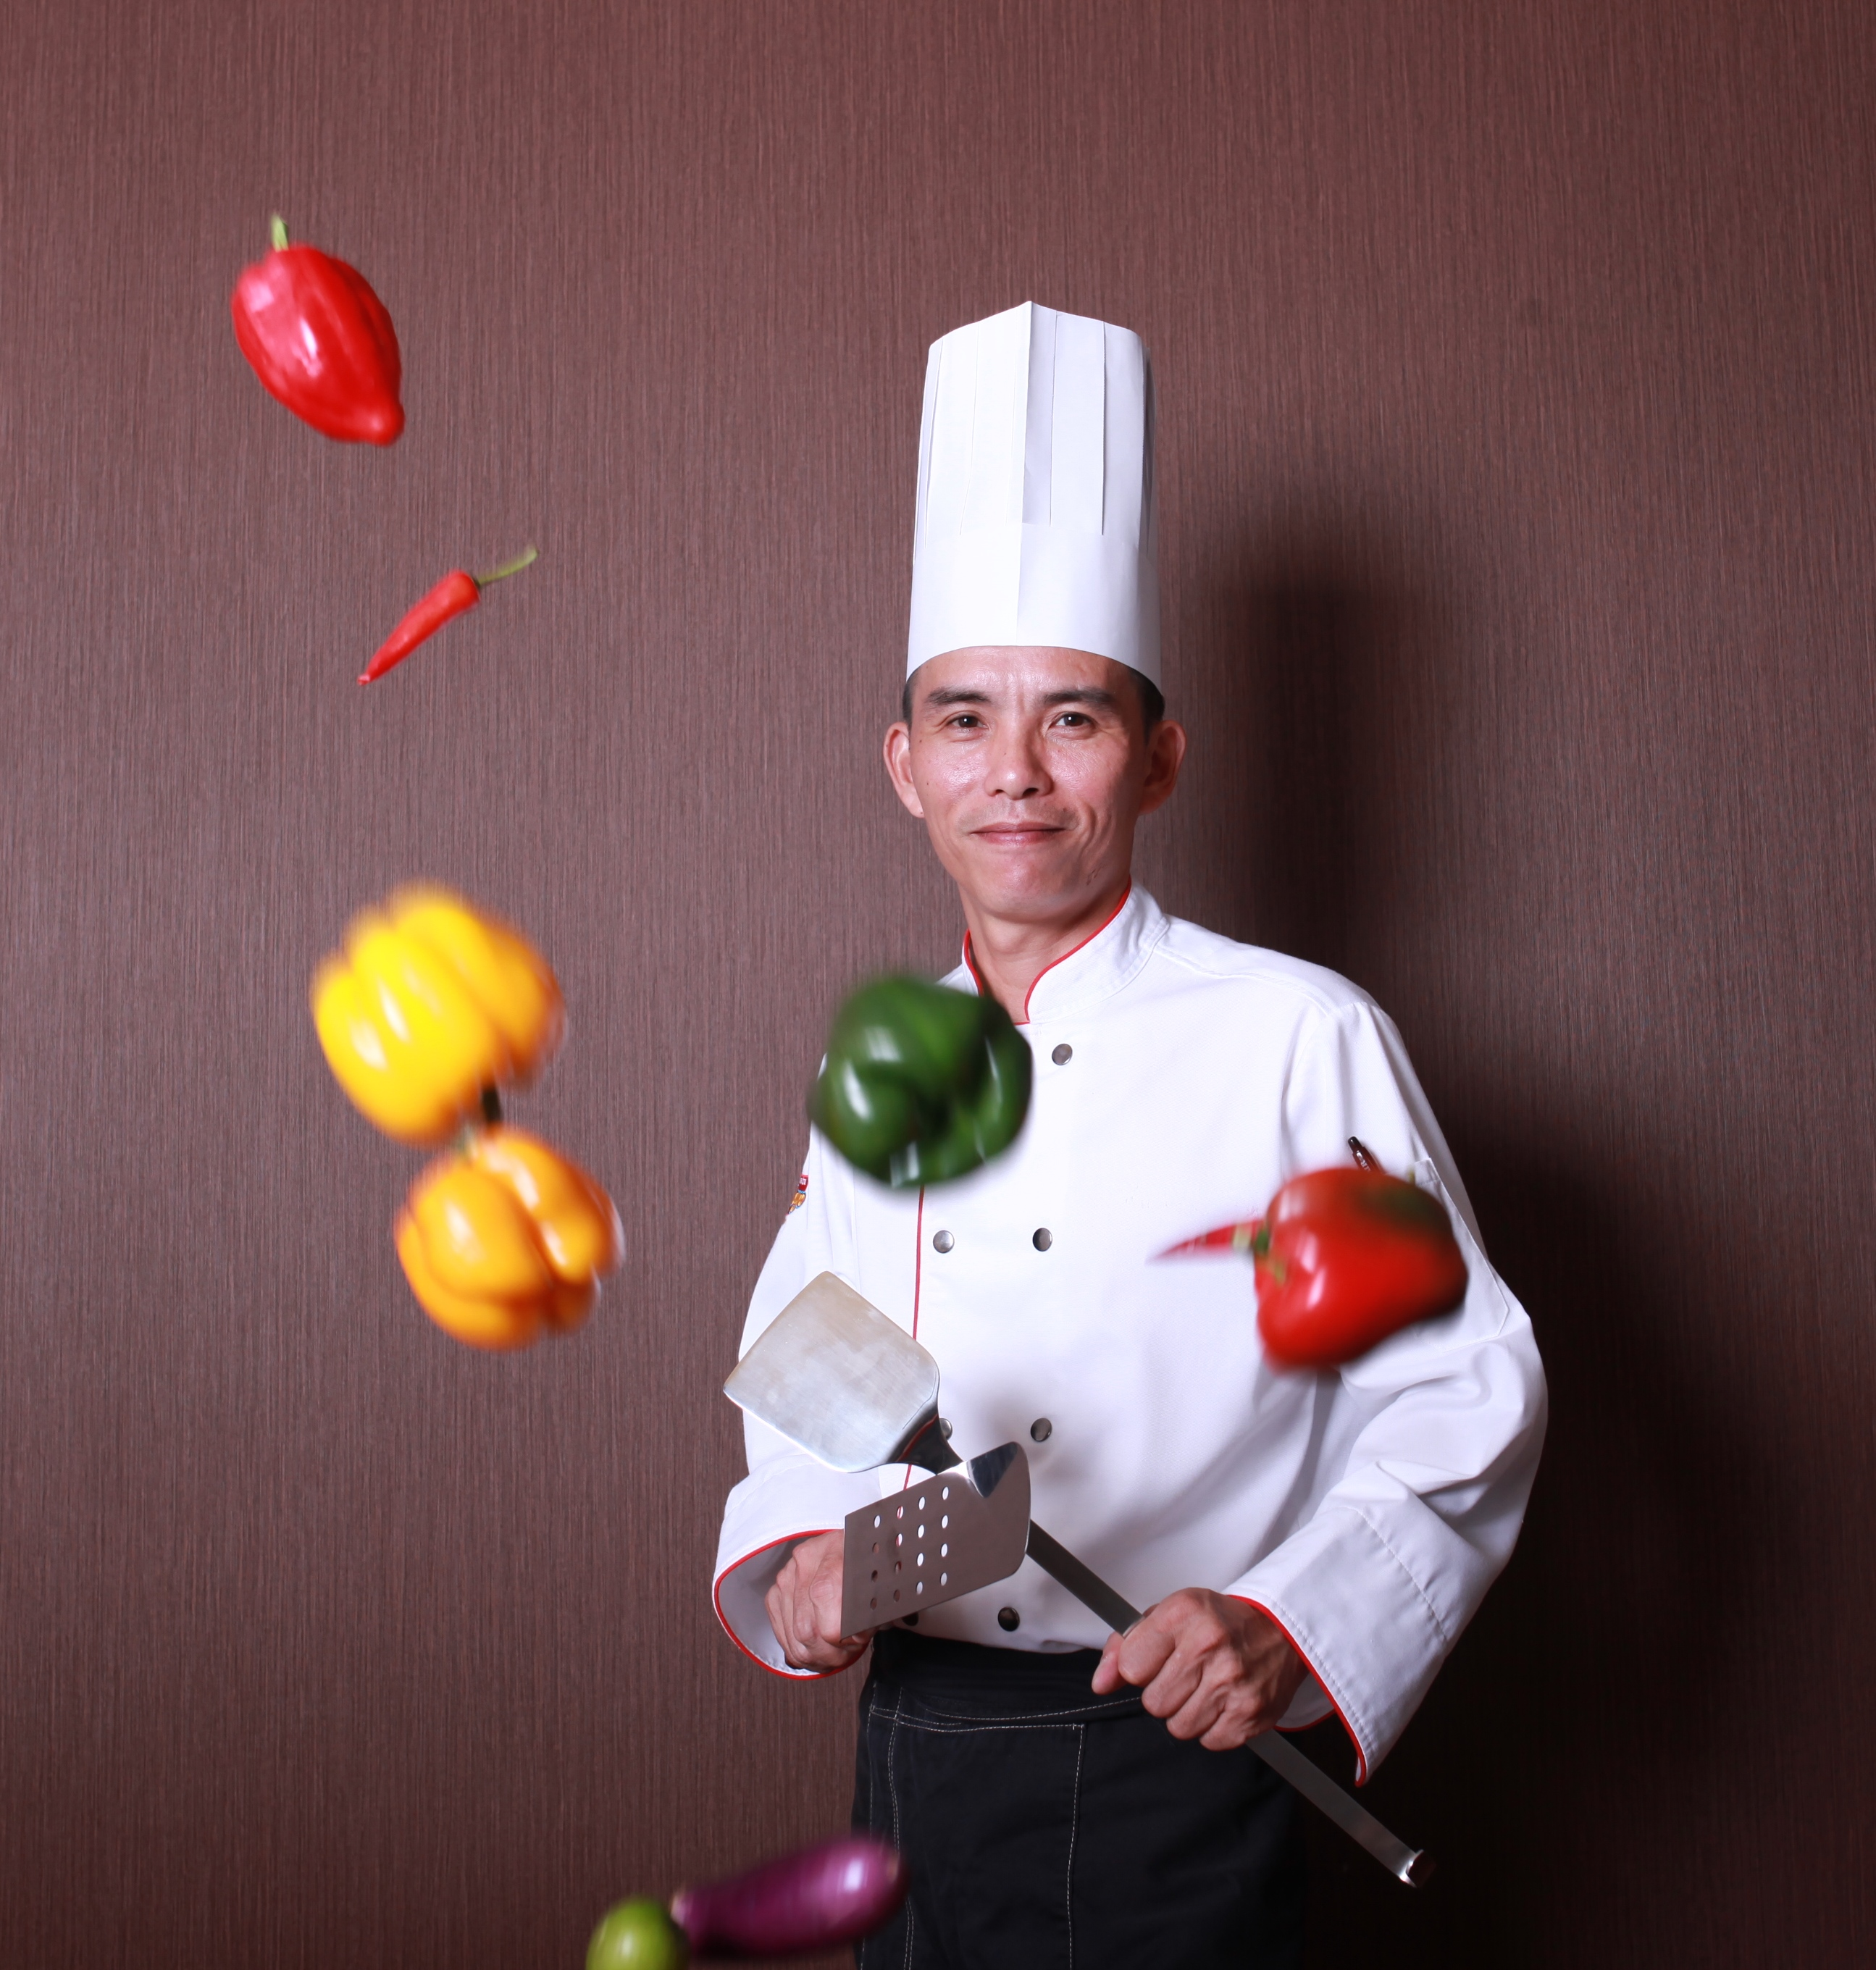 premier village danang resort appoints new executive chef